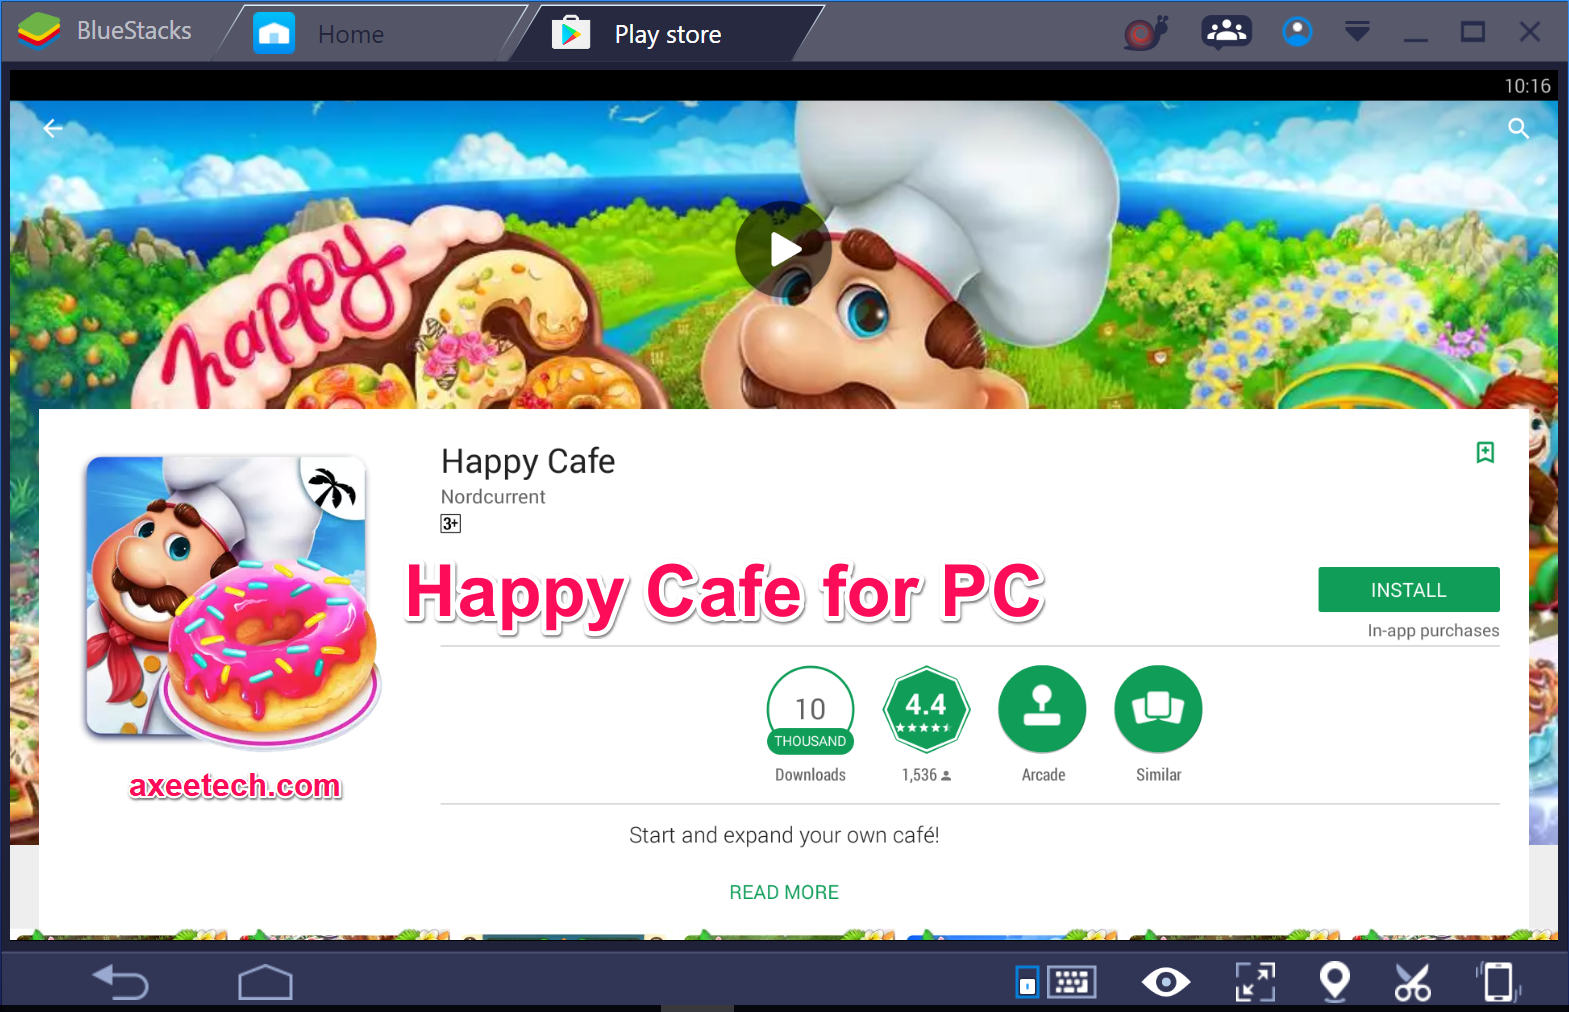 Happy-Cafe-For-PC-Windows10